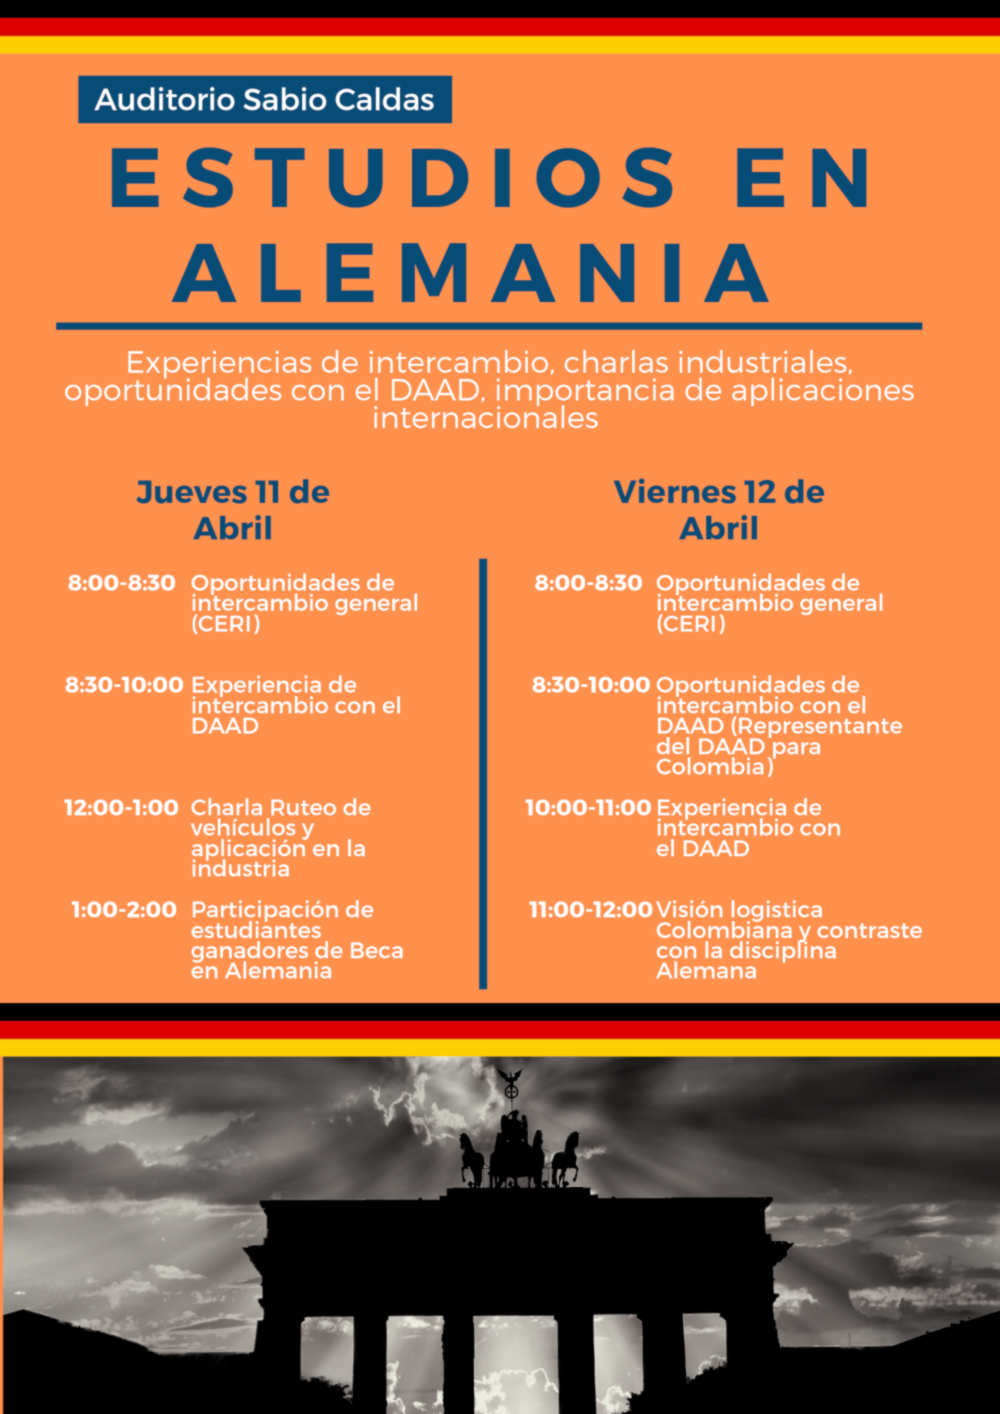 9Abril2019 BECAS Y OPORTUNIDADES EN ALEMANIA ABRIL 11 y 12 2019